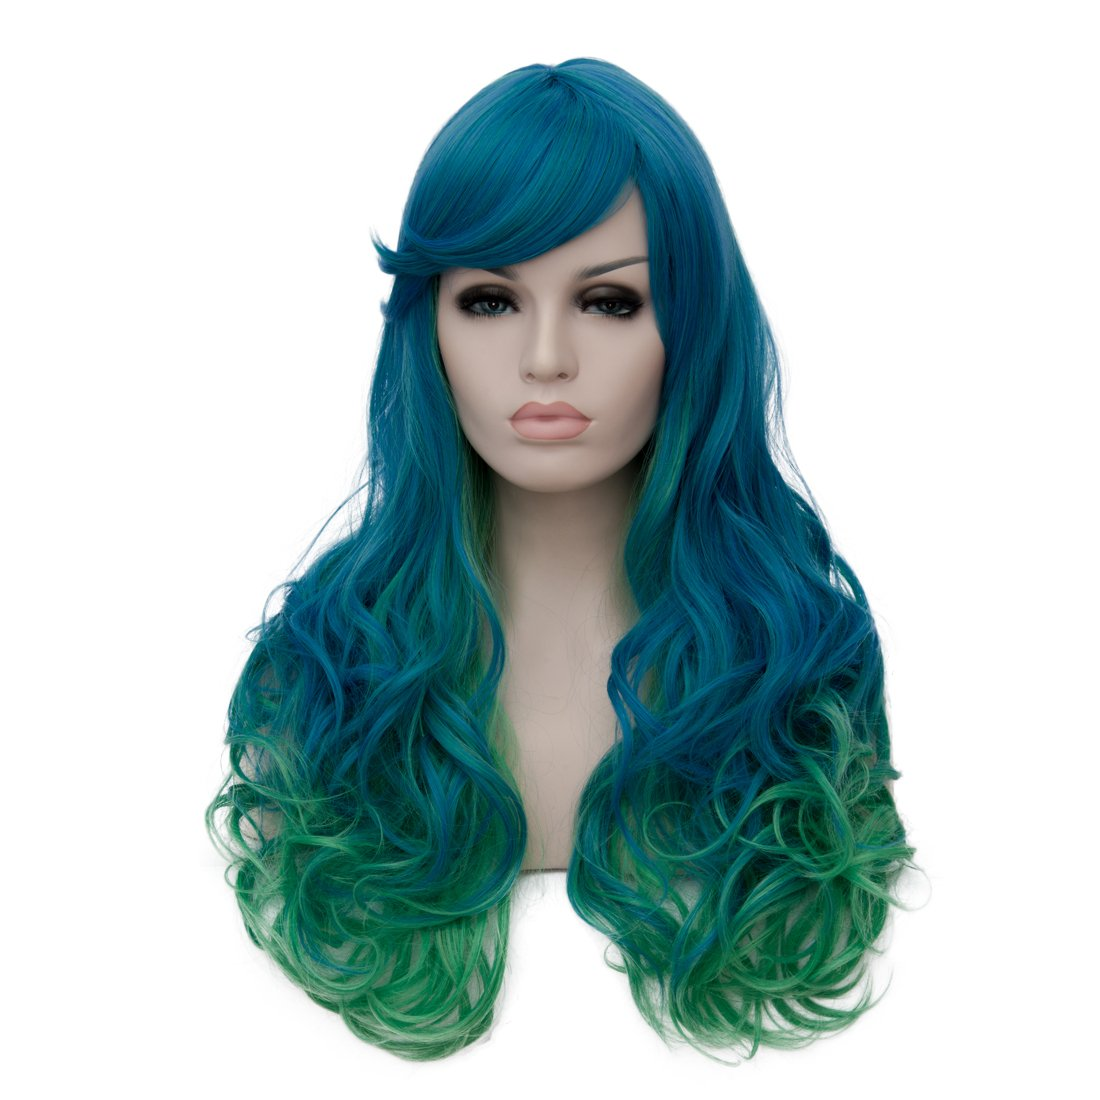 Netgo Women's Blue Ombre Green Wigs With Side Bang Long Wavy Heat Resistant Synthetic Wigs for Costume Party Cosplay